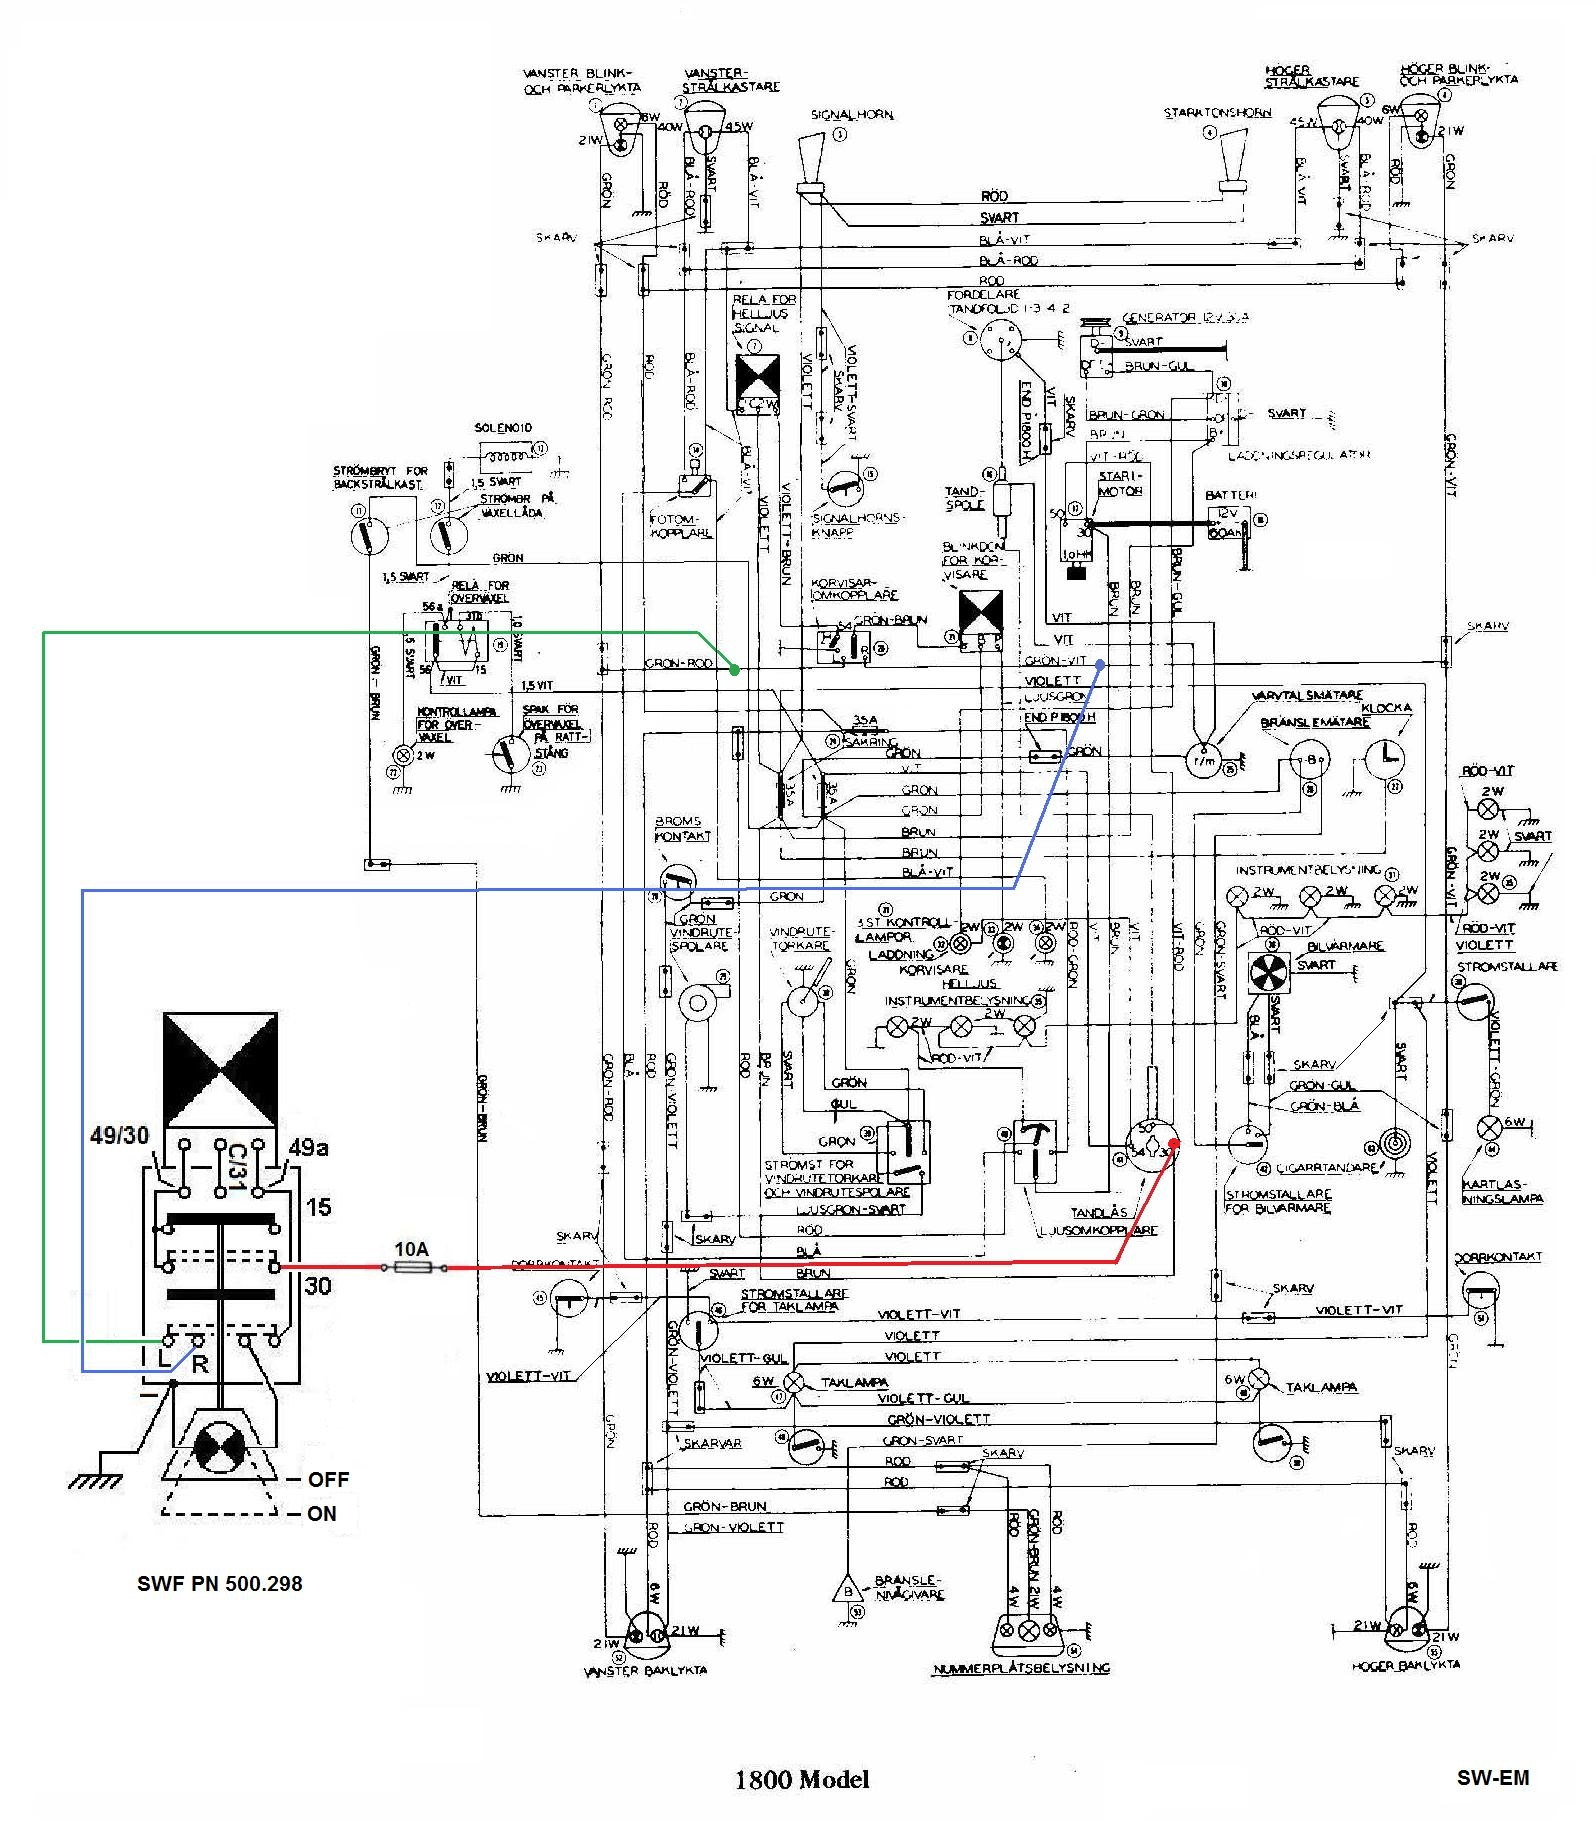 Emergency Power Off Switch Wiring Diagram : 41 Wiring